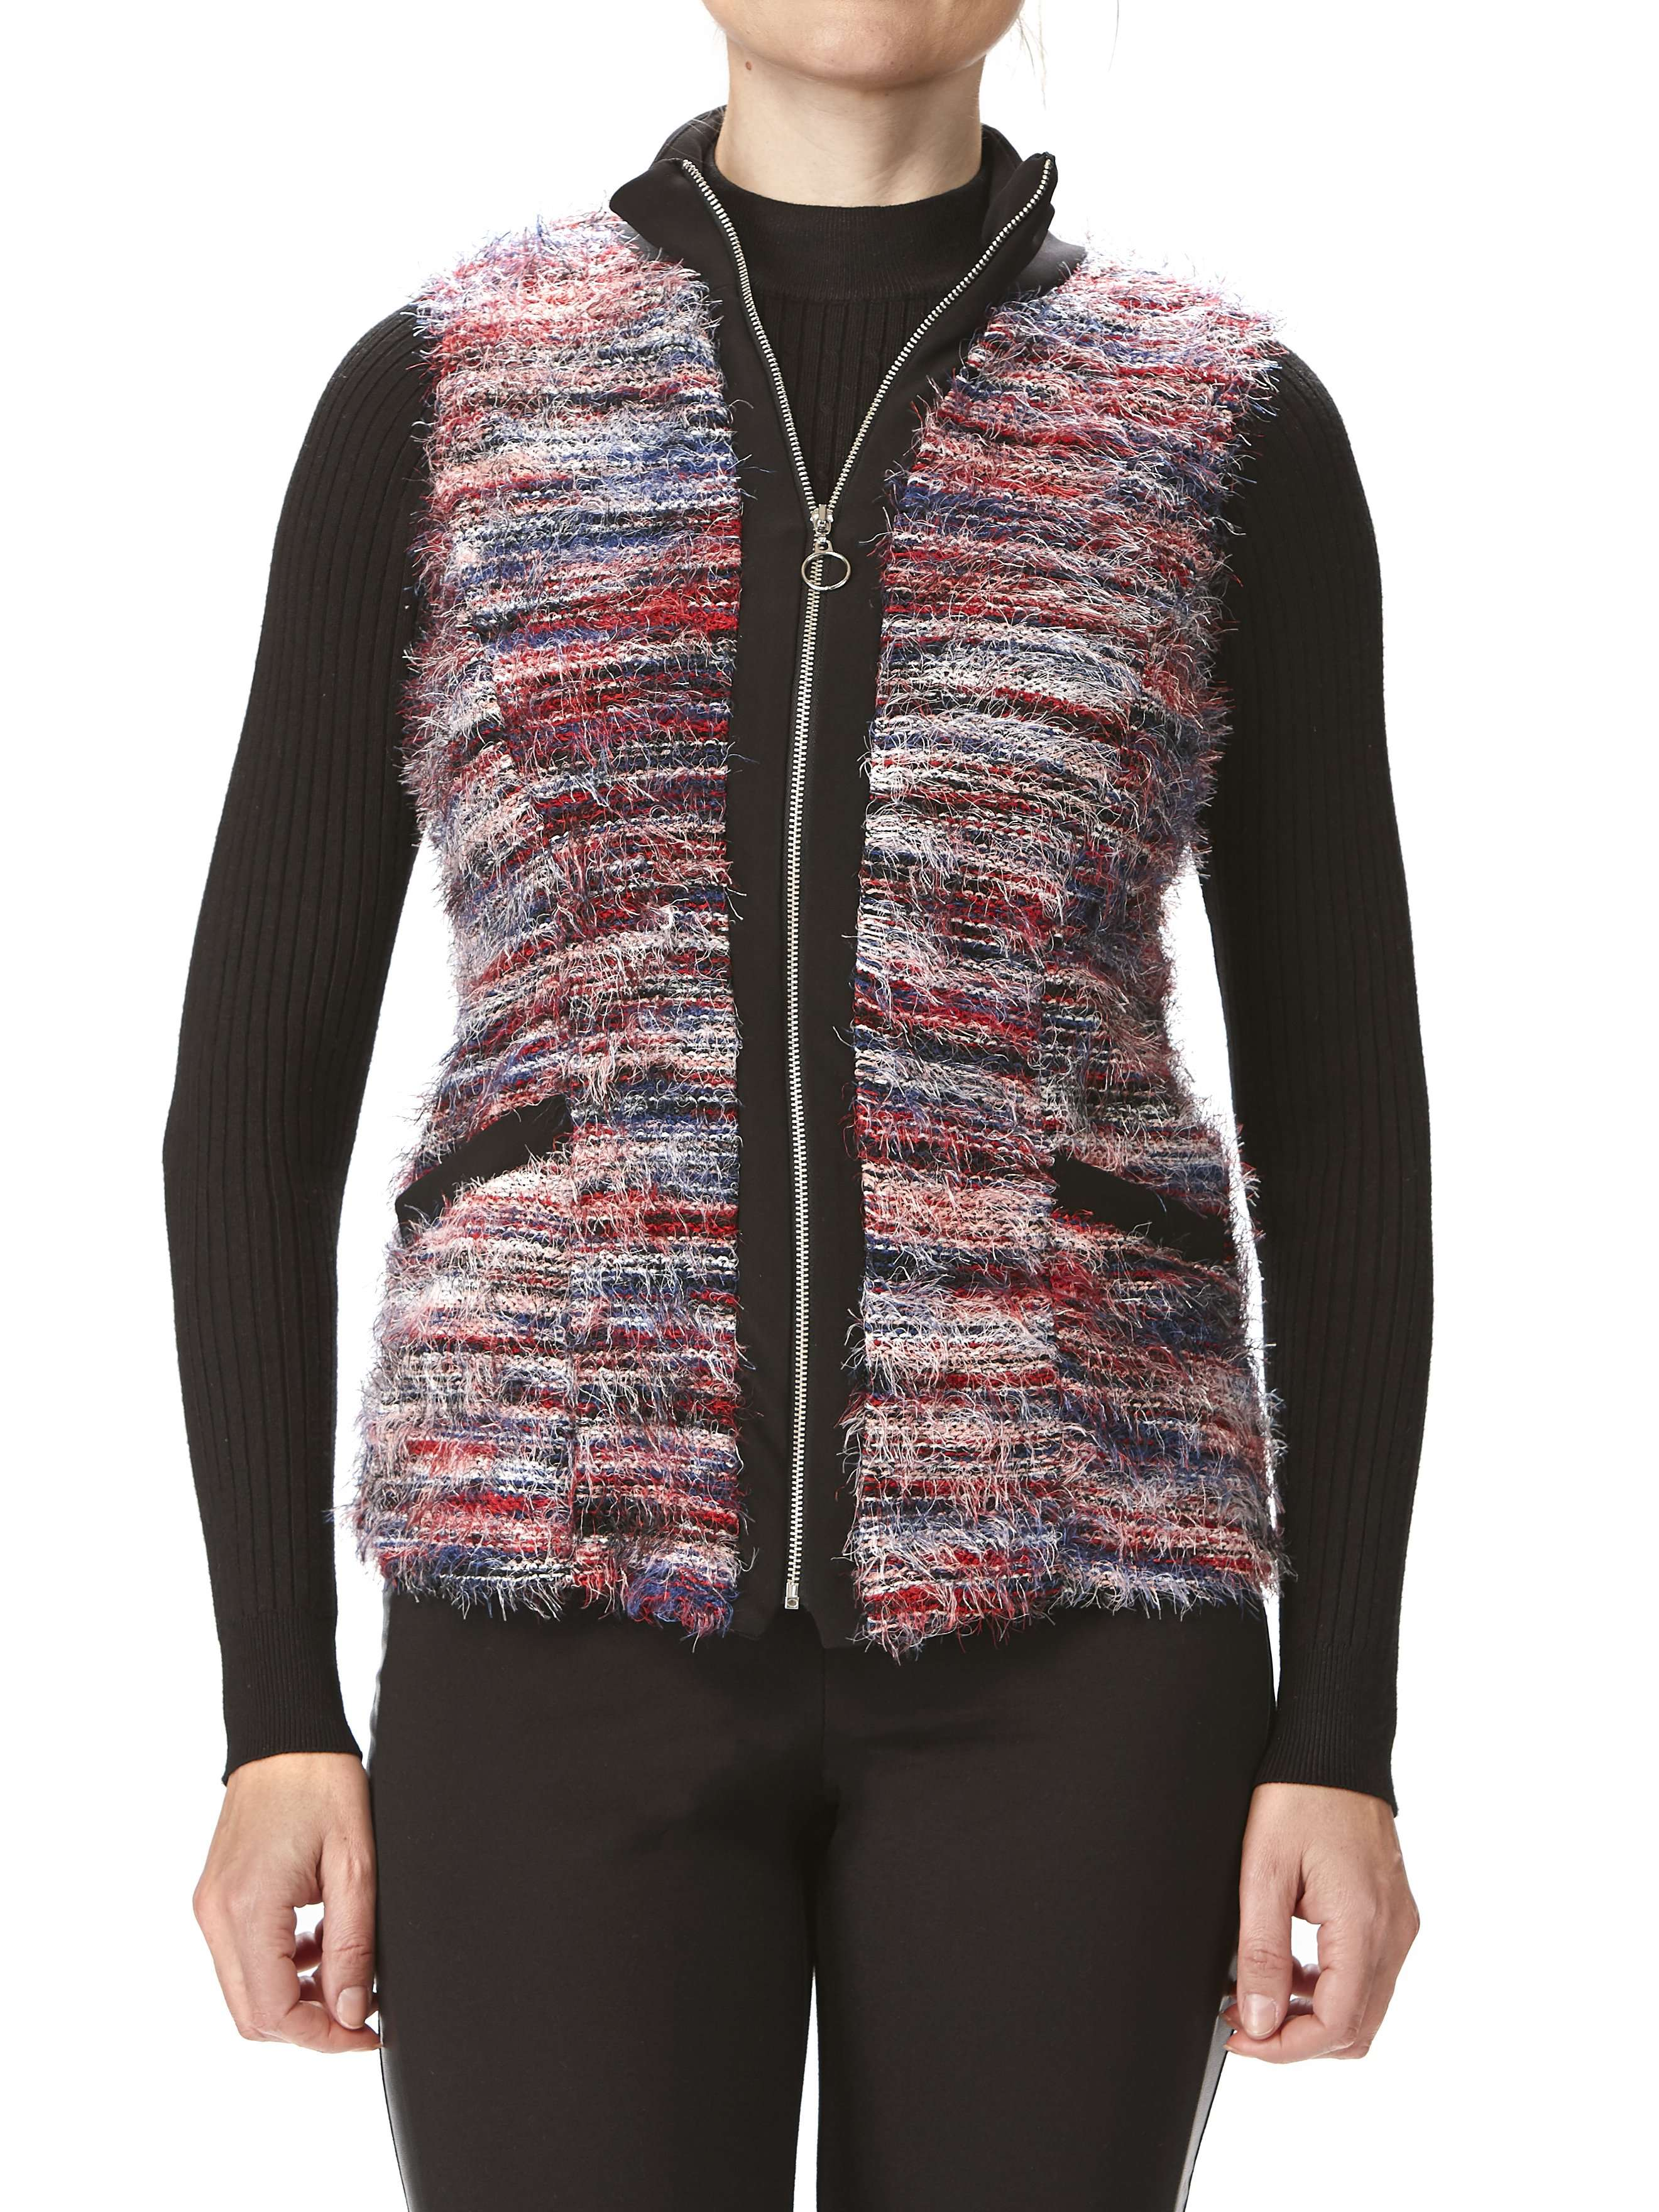 Women's Sleeveless Vest - Multi Color - Made In Canada - Yvonne Marie - Yvonne Marie